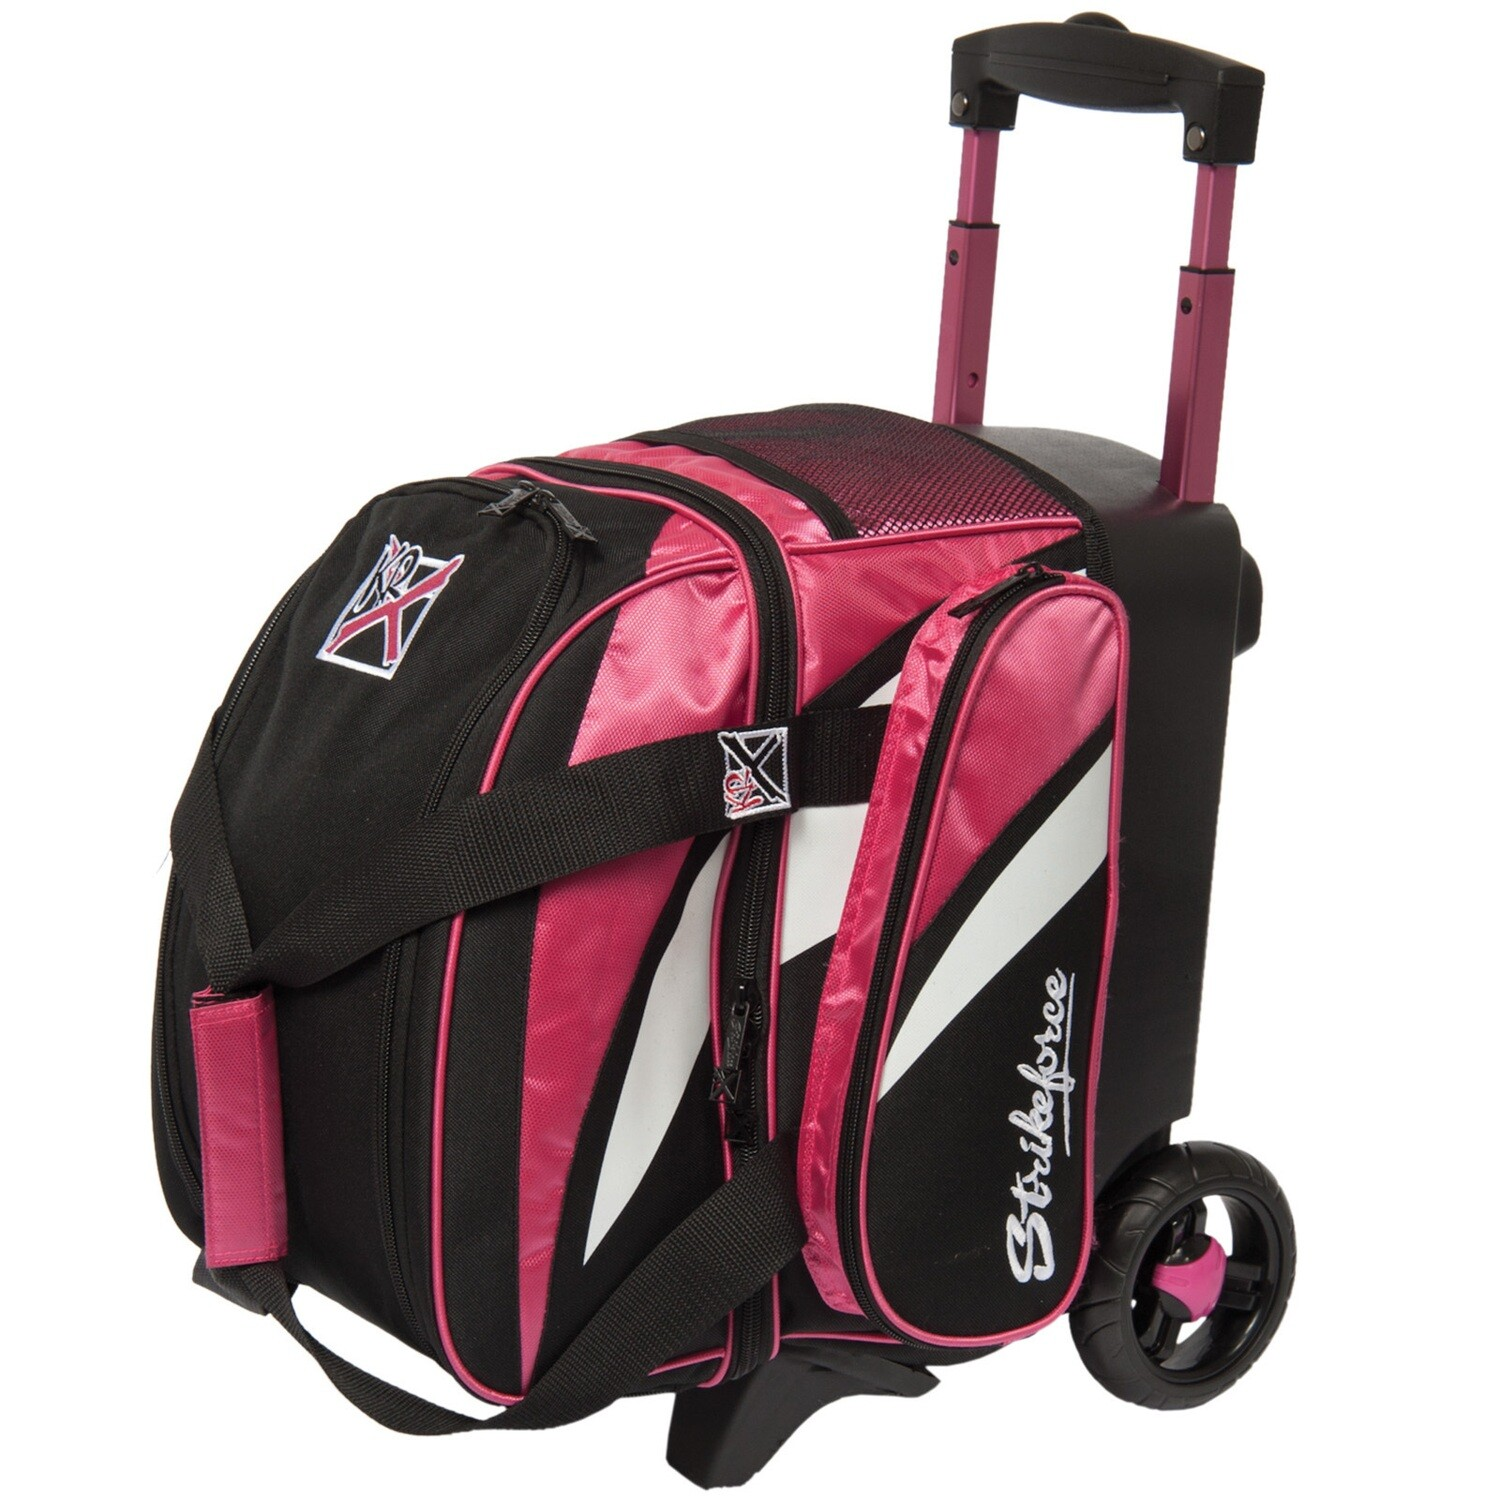 KR Strikeforce Cruiser Pink/White/Black 1 Ball Roller Bowling Bag